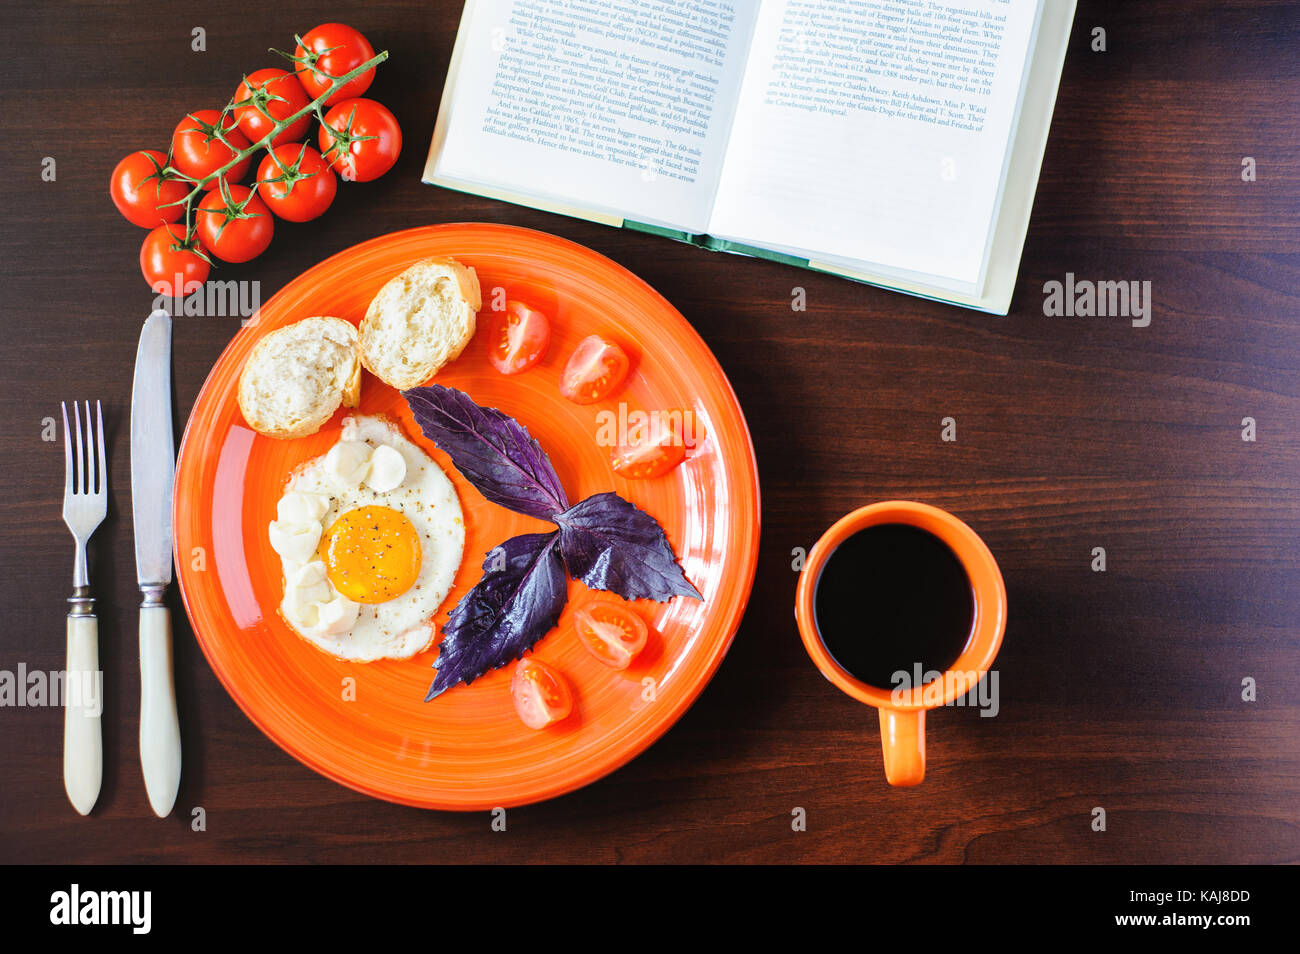 fried eggs mozzarella with basil and tomatoes on orange plate - Stock Image